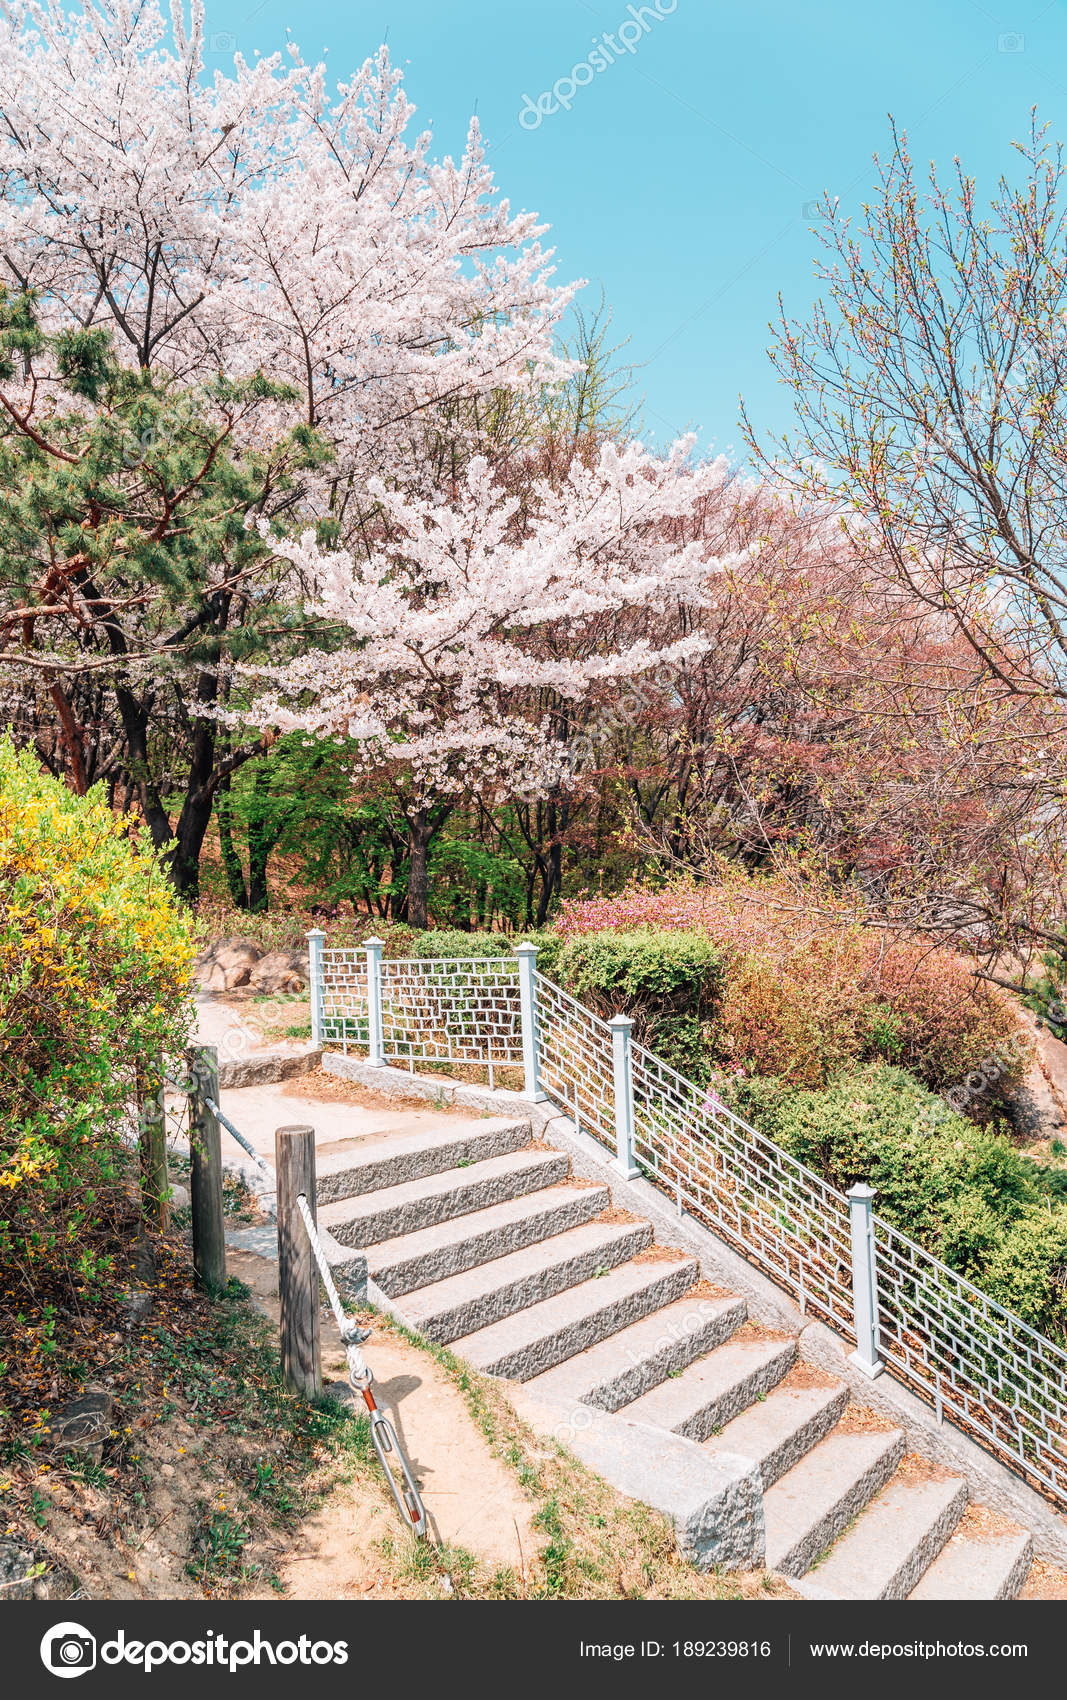 Spring Flowers Park In Suwon Korea Stock Photo C Sangapark 189239816